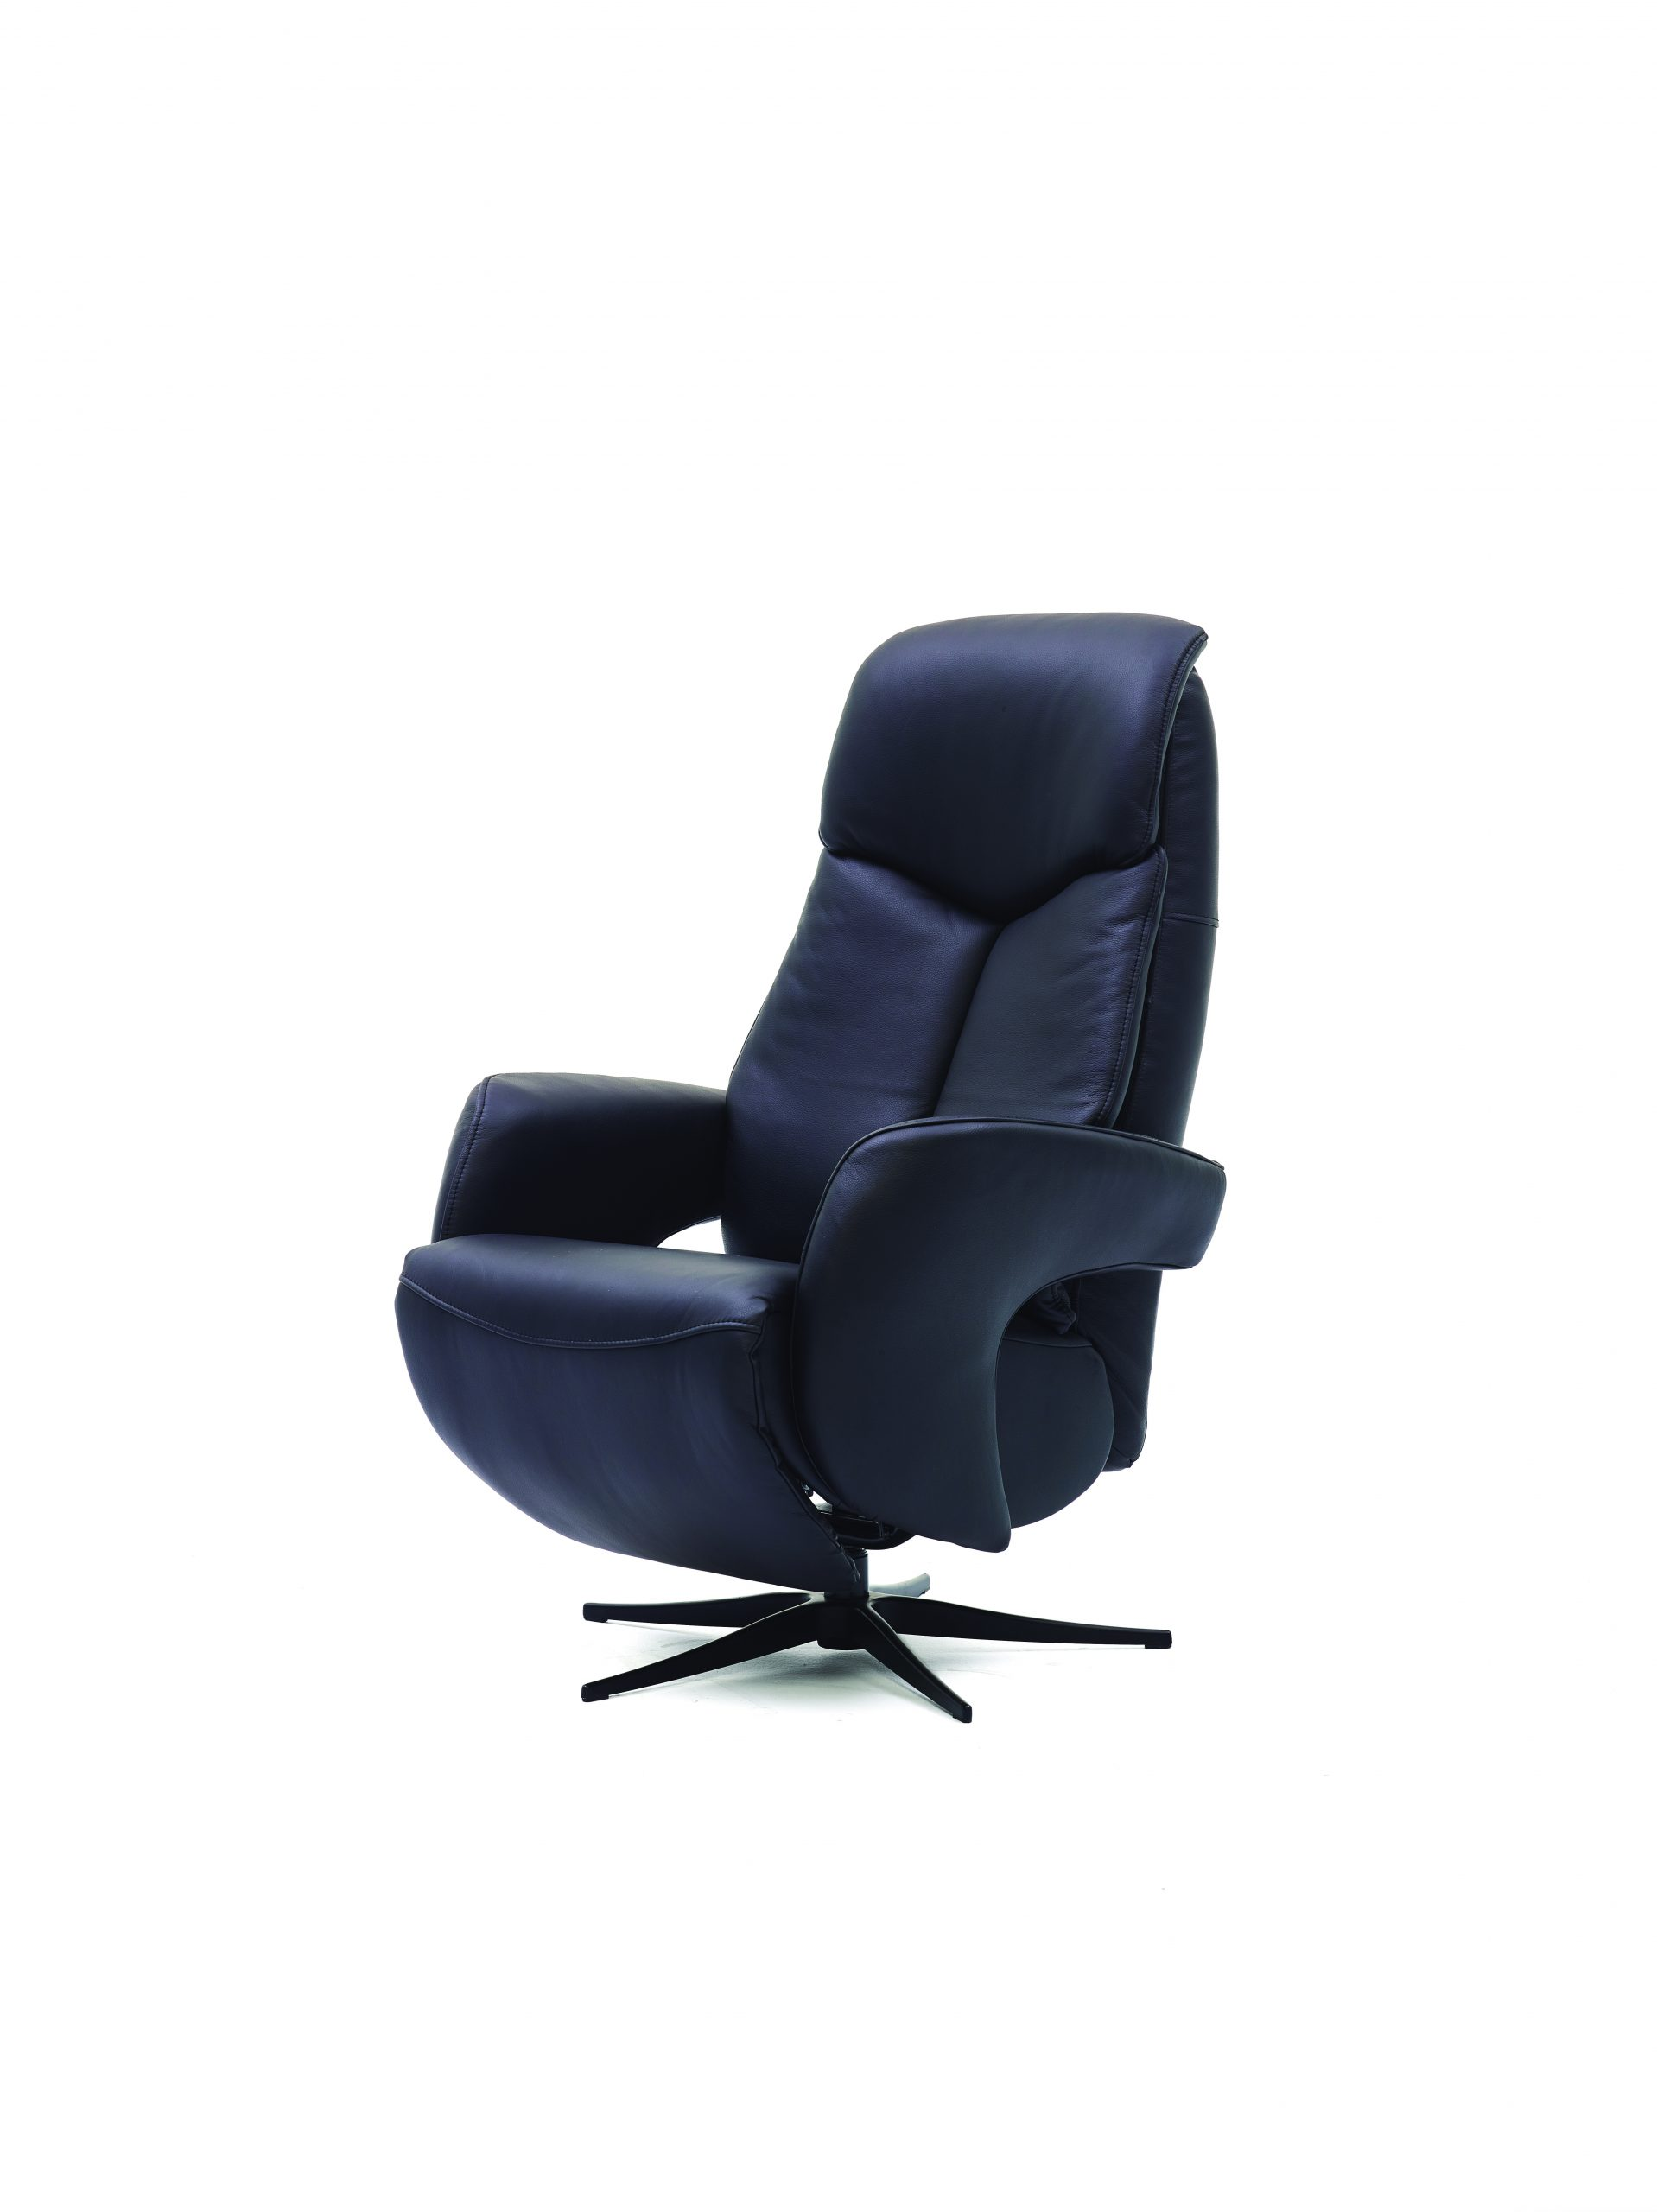 Fauteuil Relax Swing – Conforama Luxembourg tout Fauteuil Relax Conforama